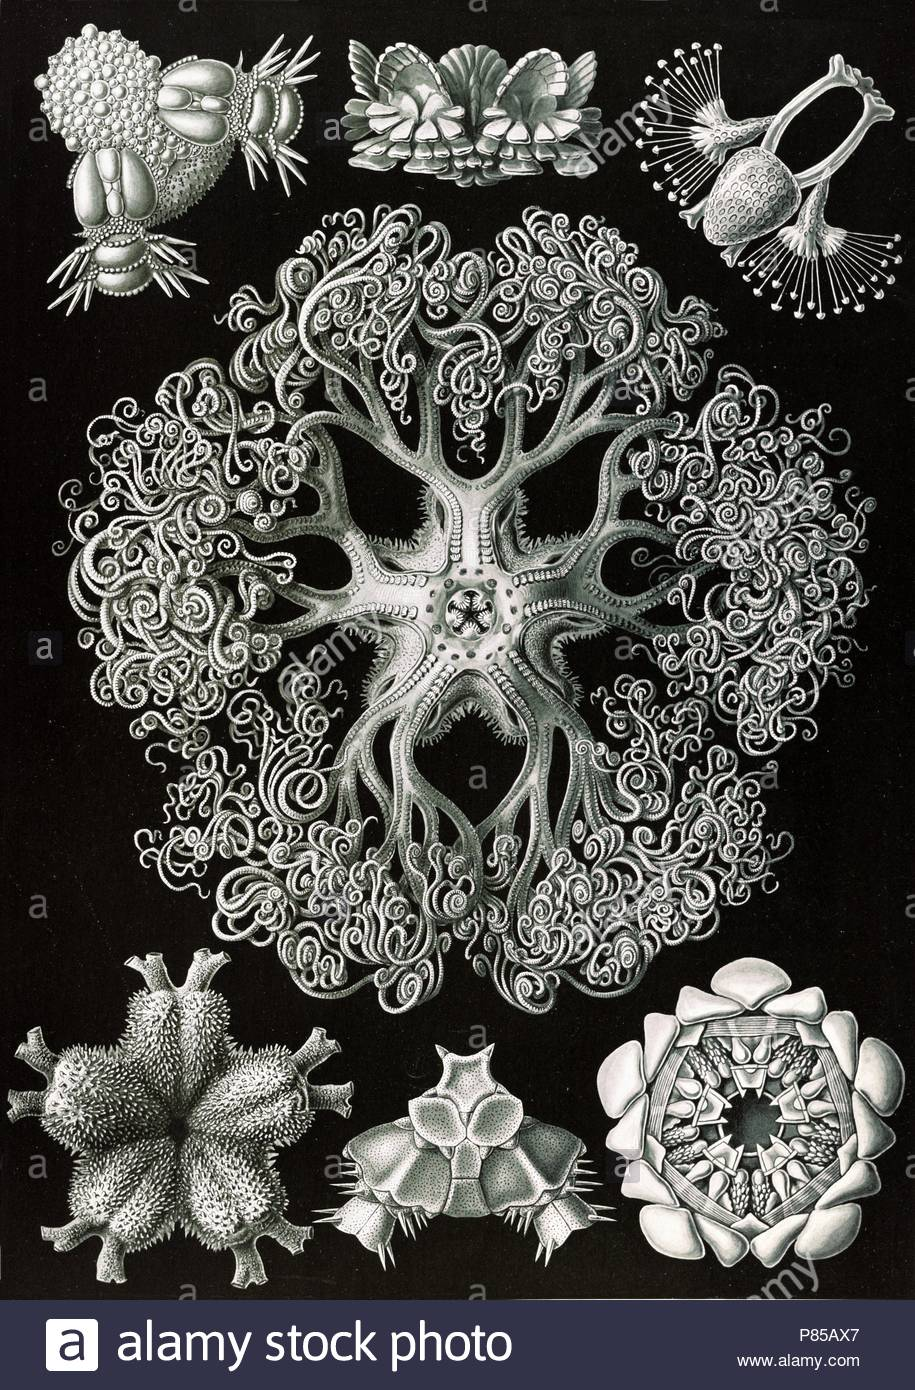 Illustration shows starfish and details of starfish anatomy ...